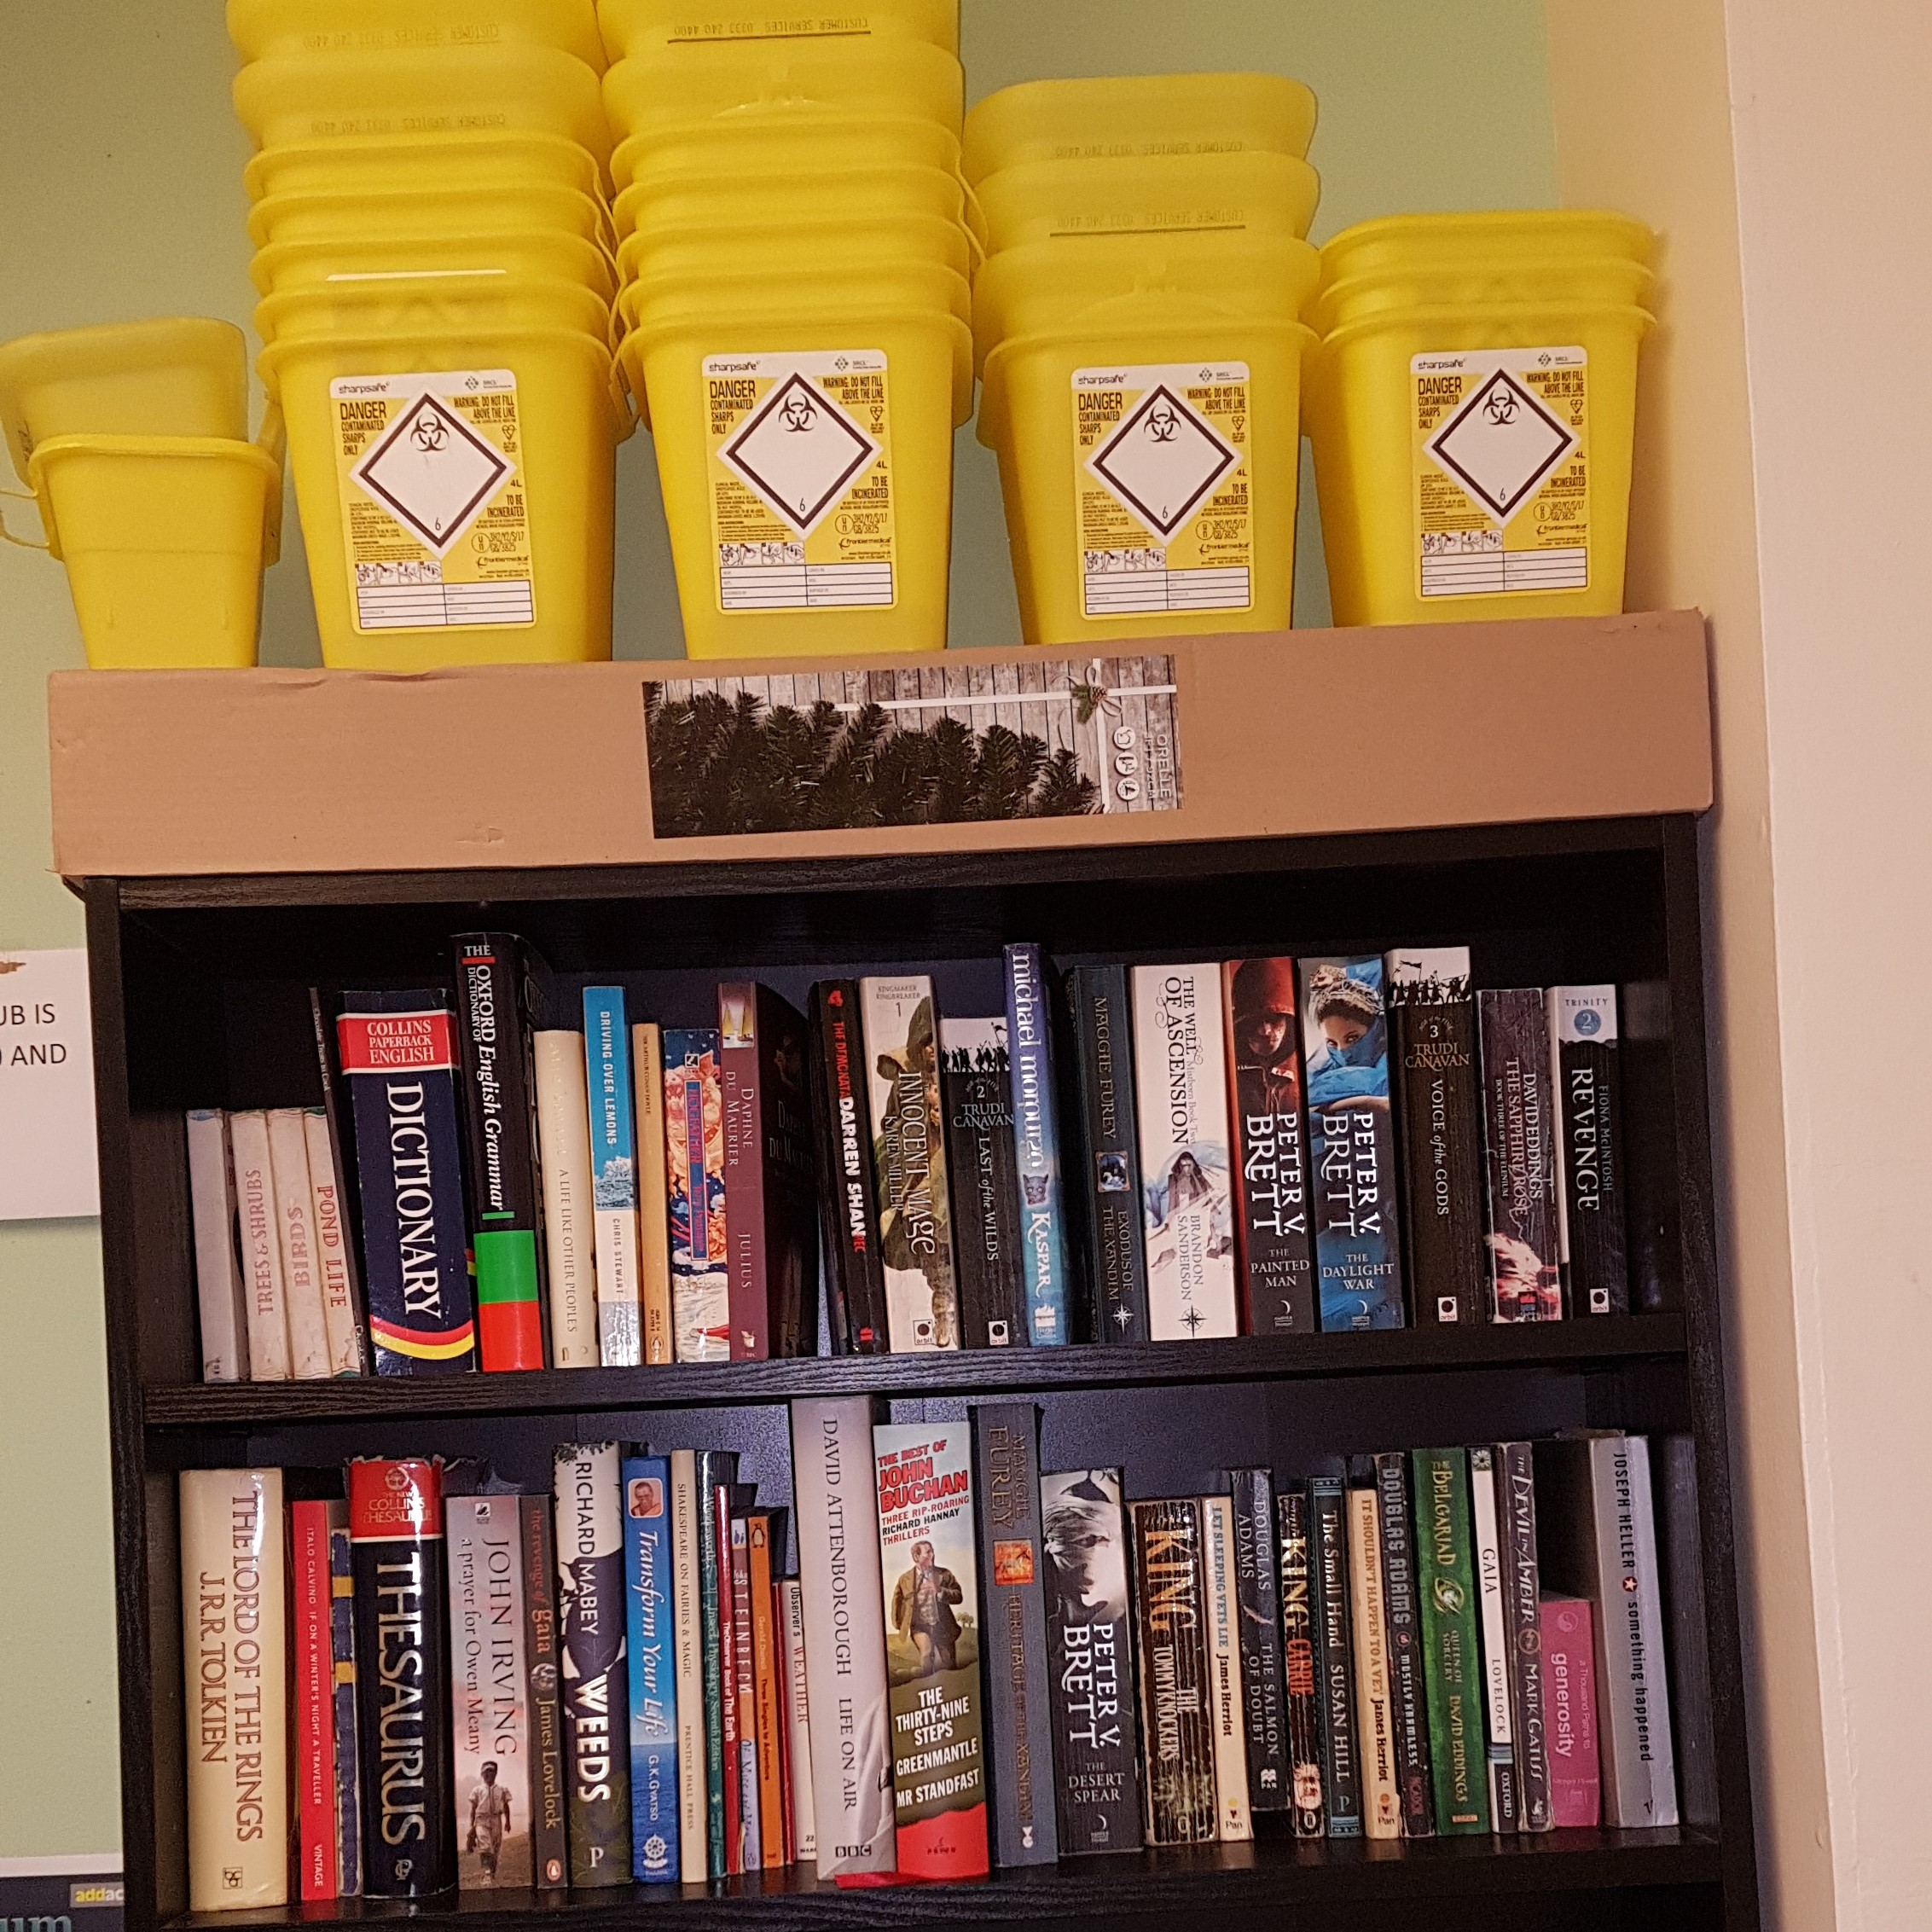 Bookshelf and sharps